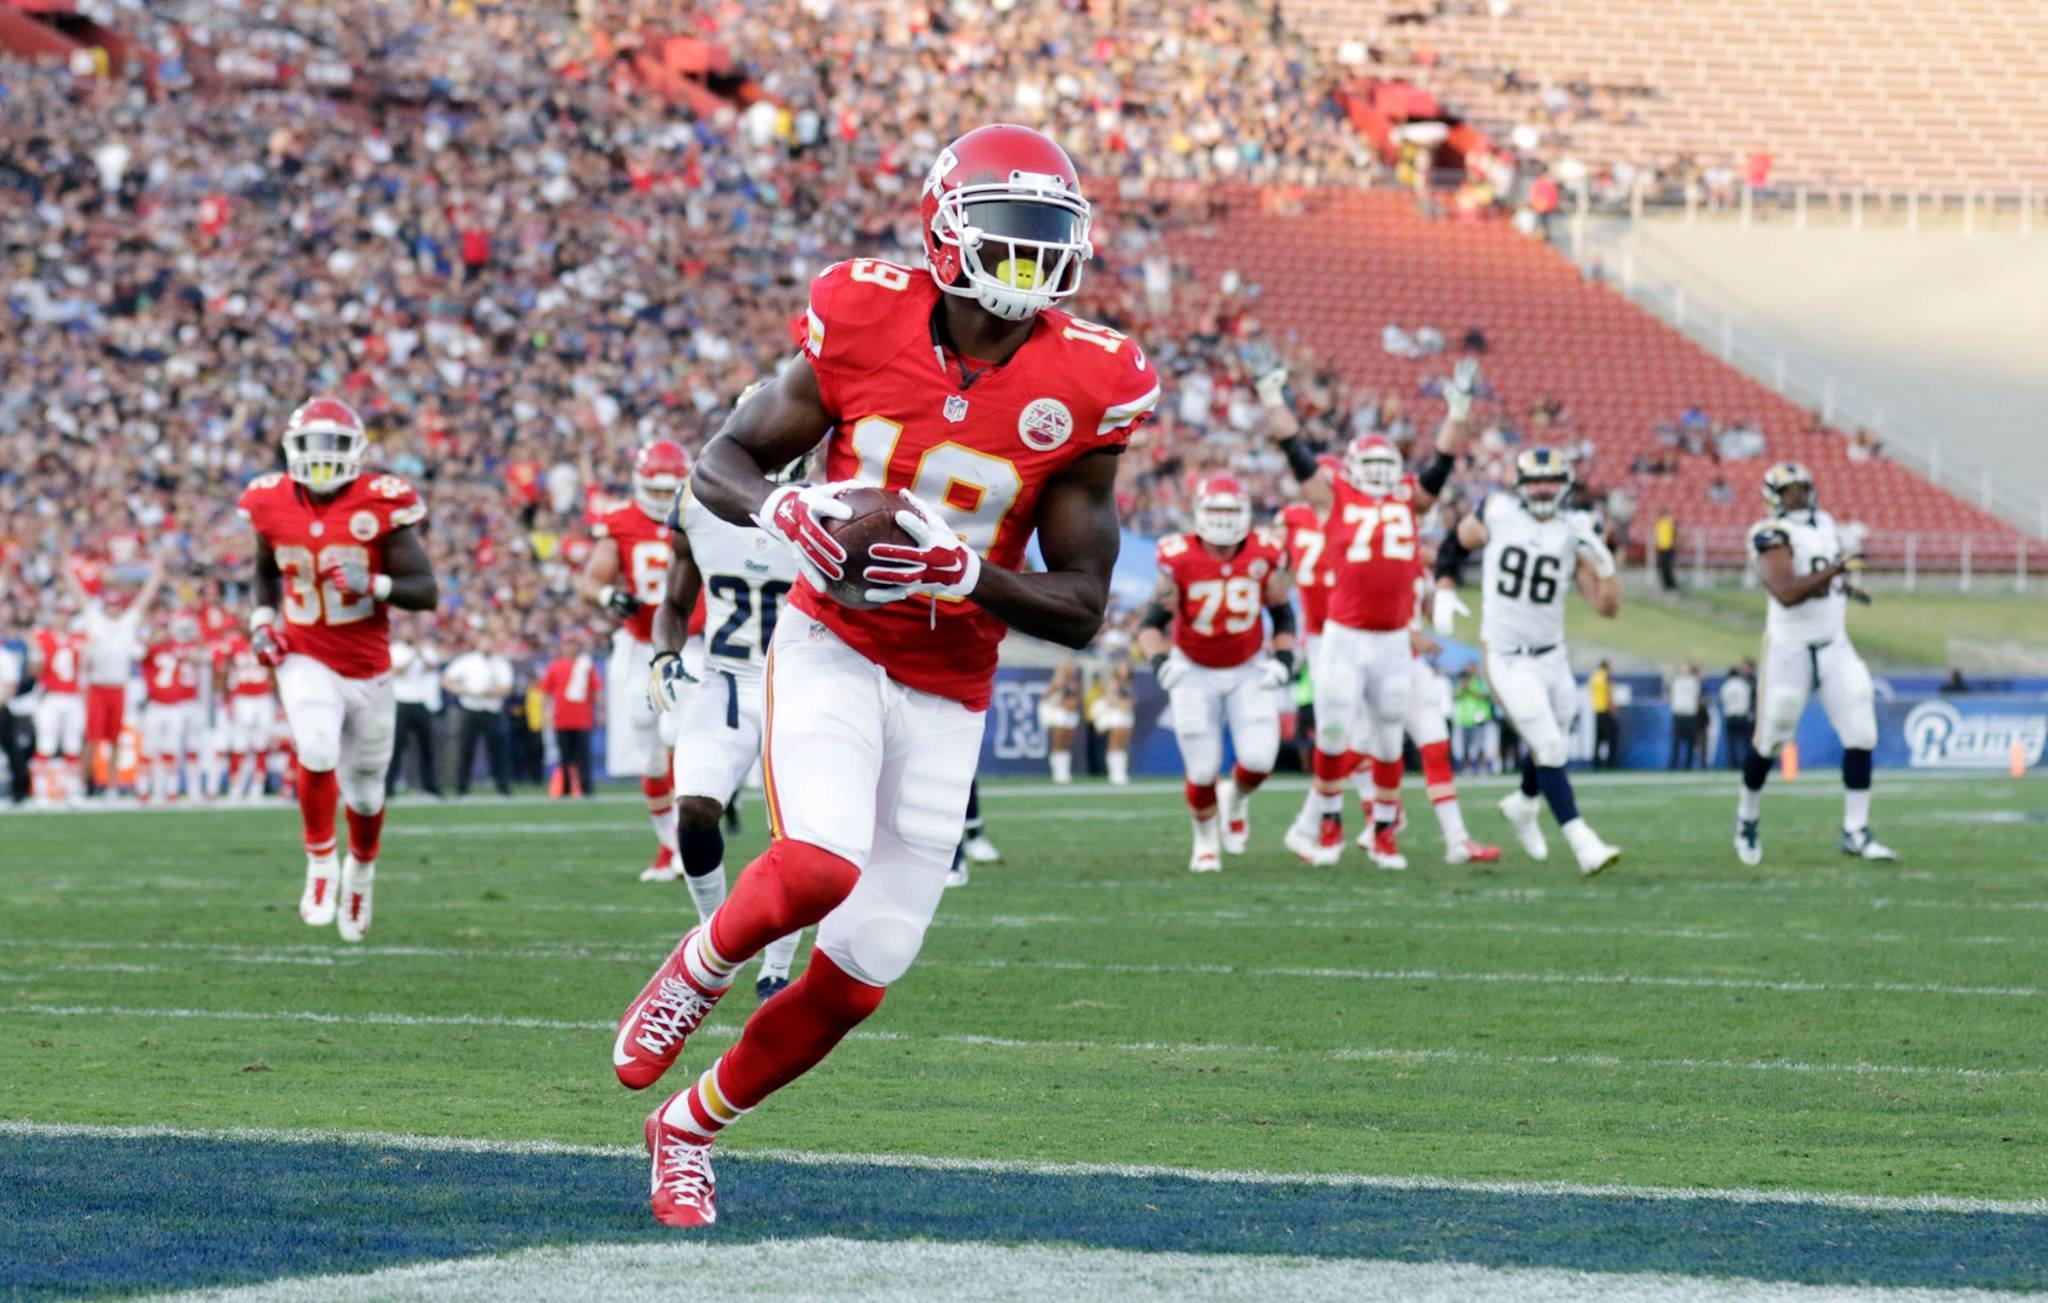 The Kansas City Chiefs lead the Los Angeles Rams 20-14 after three quarters of play. Early on, Jeremy Maclin scored a touchdown. (AP)